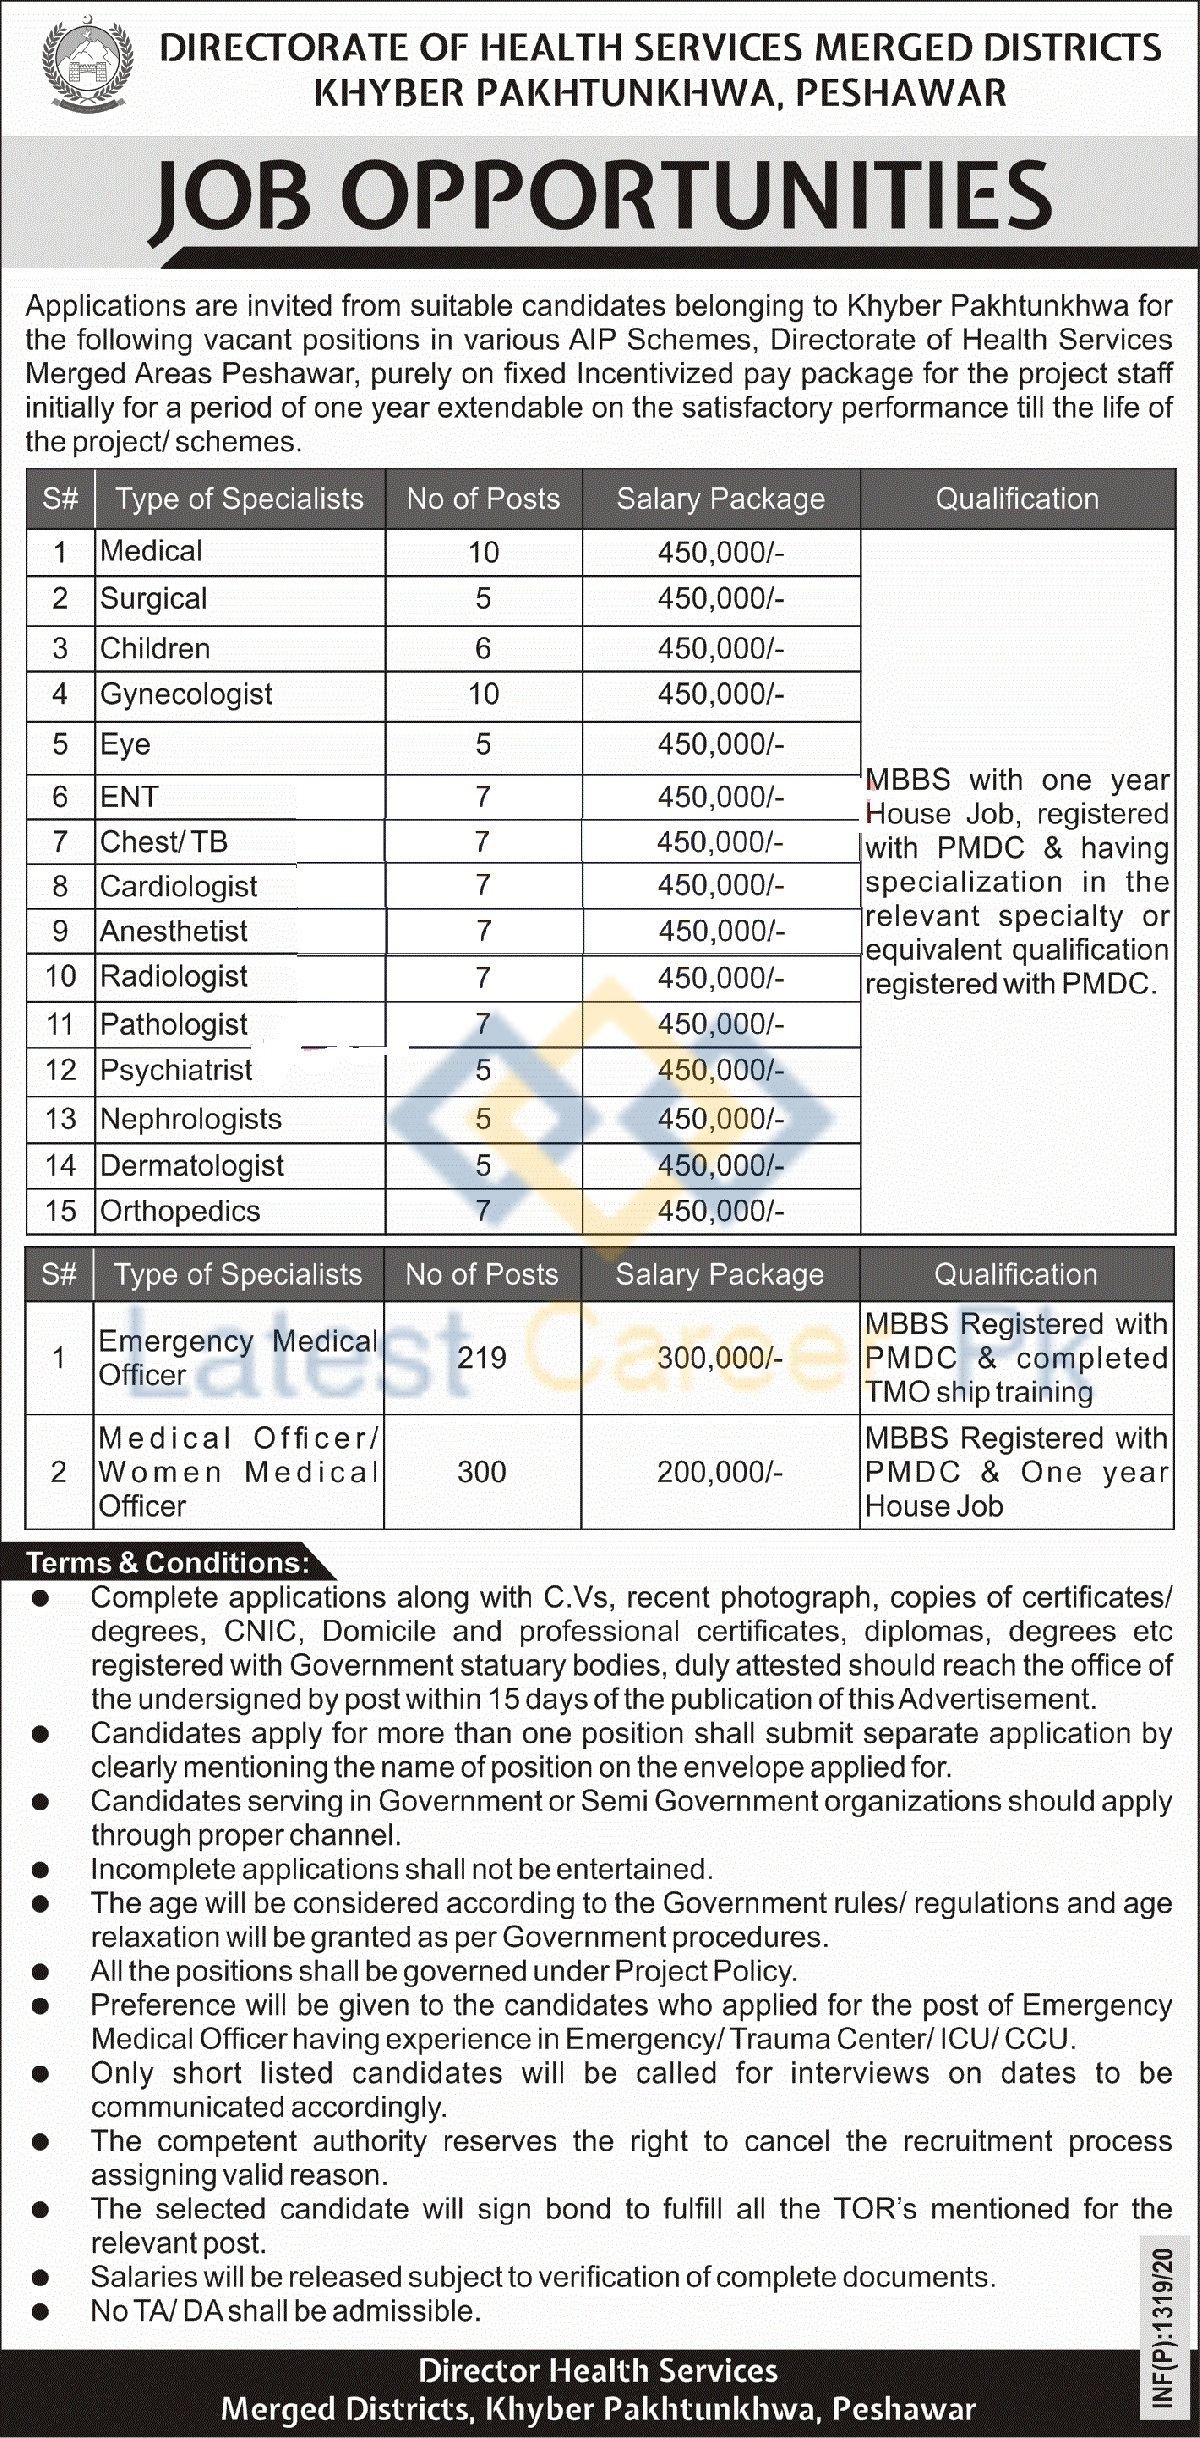 Directorate-of-Health-Services-Merged-Areas-Khyber-Pakhtunkhwa-Jobs-07-April-2020